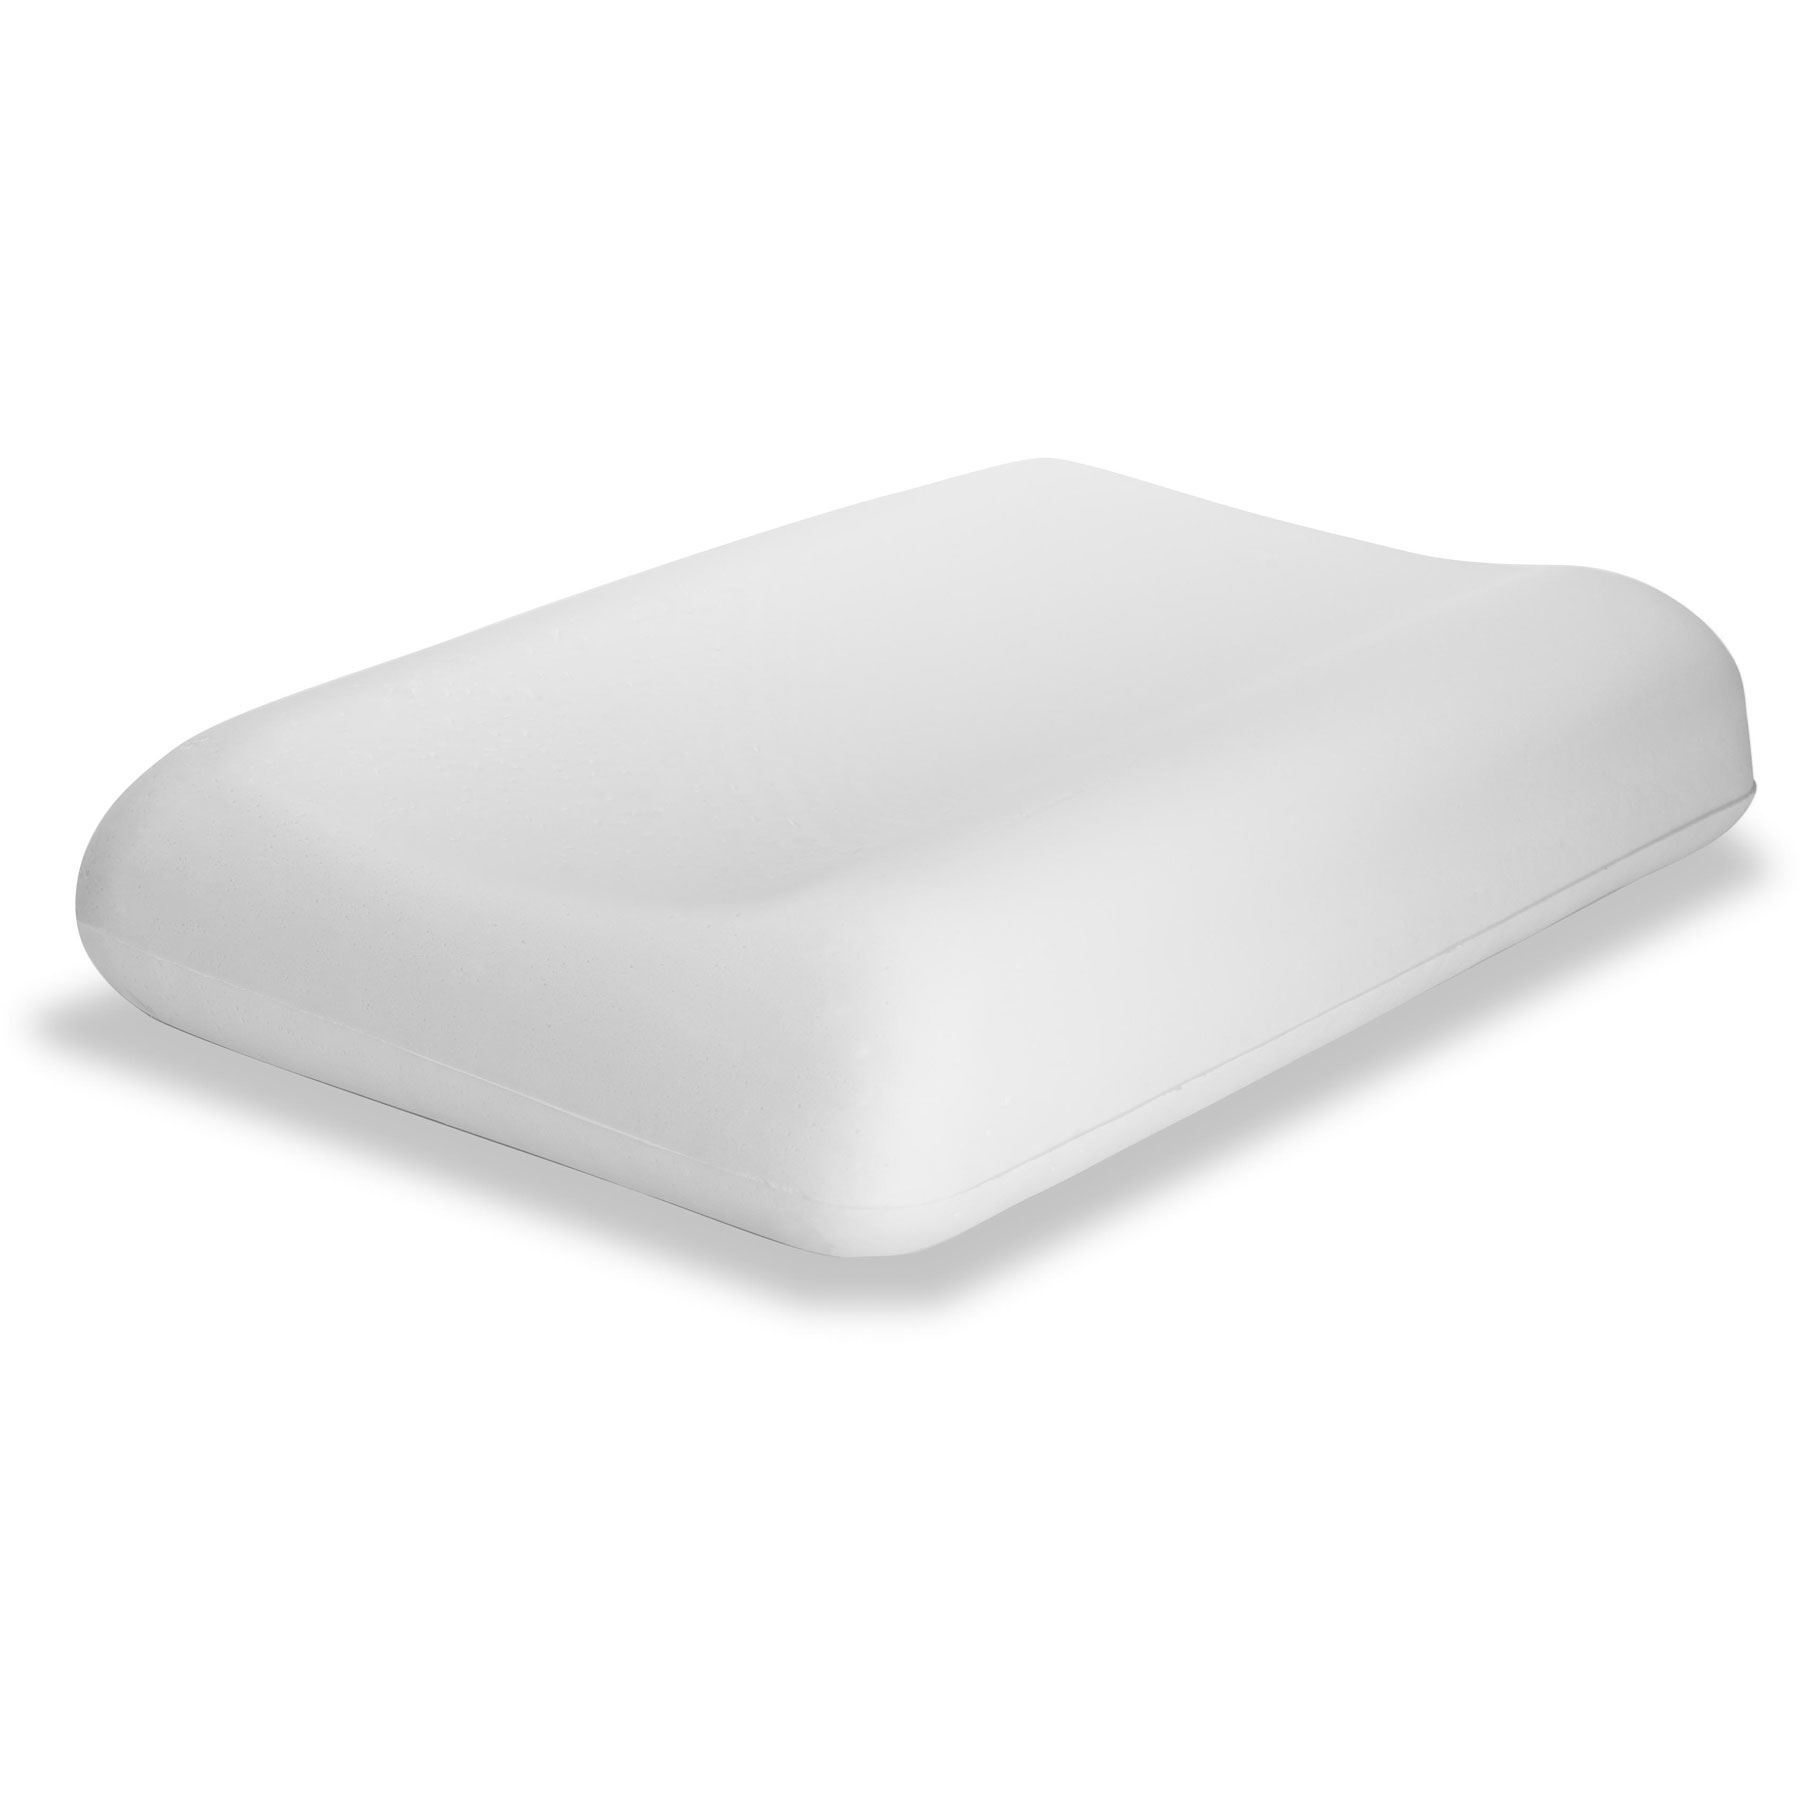 dentons low profile pillow review